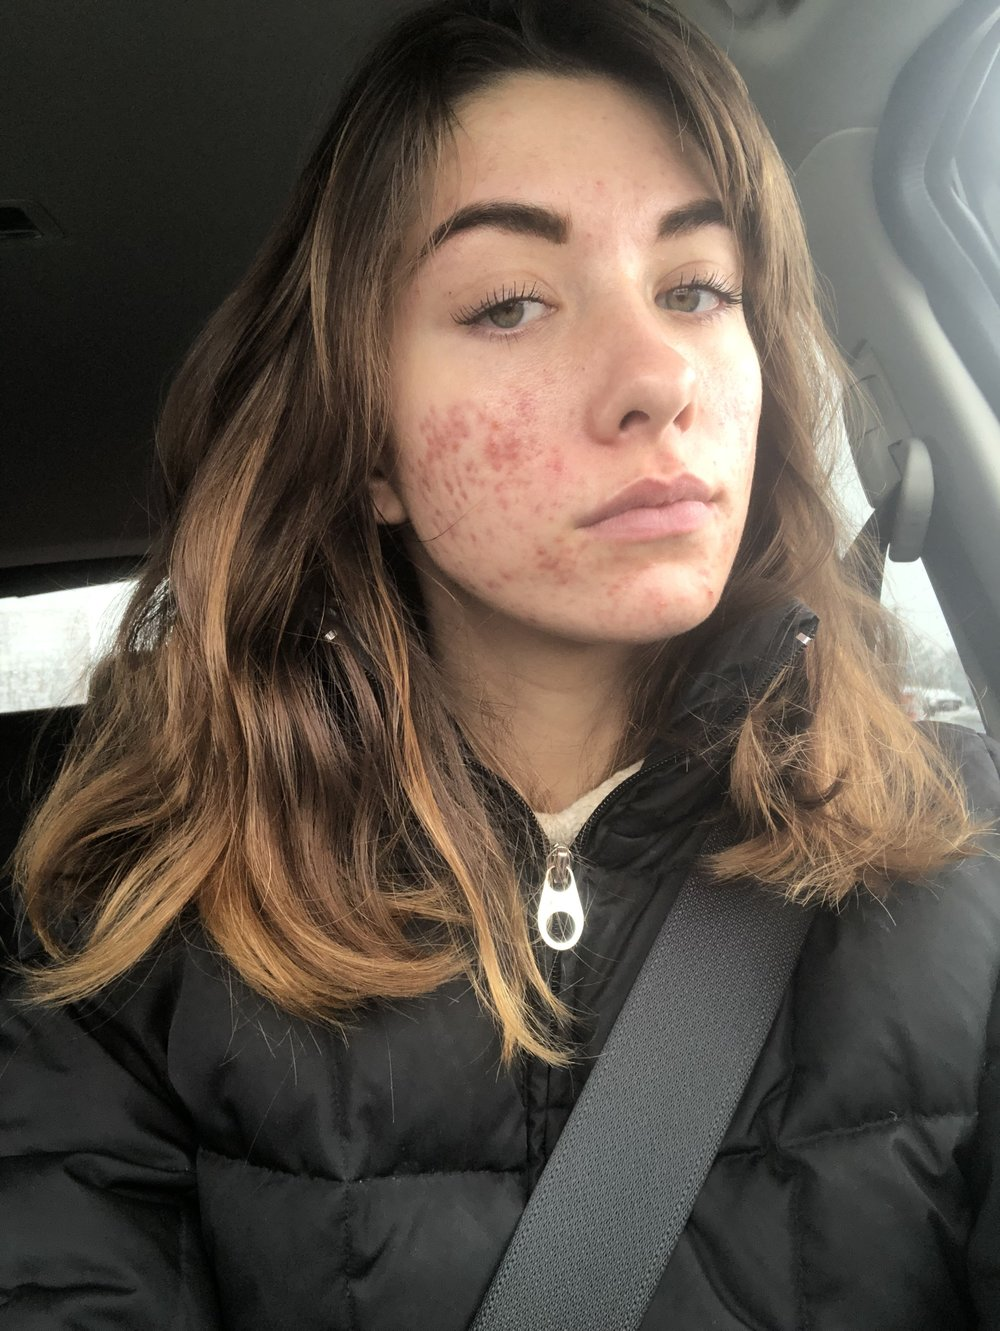 About 2 months into this period. I decided to go out without makeup to see if I felt any differently. NOPE. I didn't. And people didn't treat me any differently.